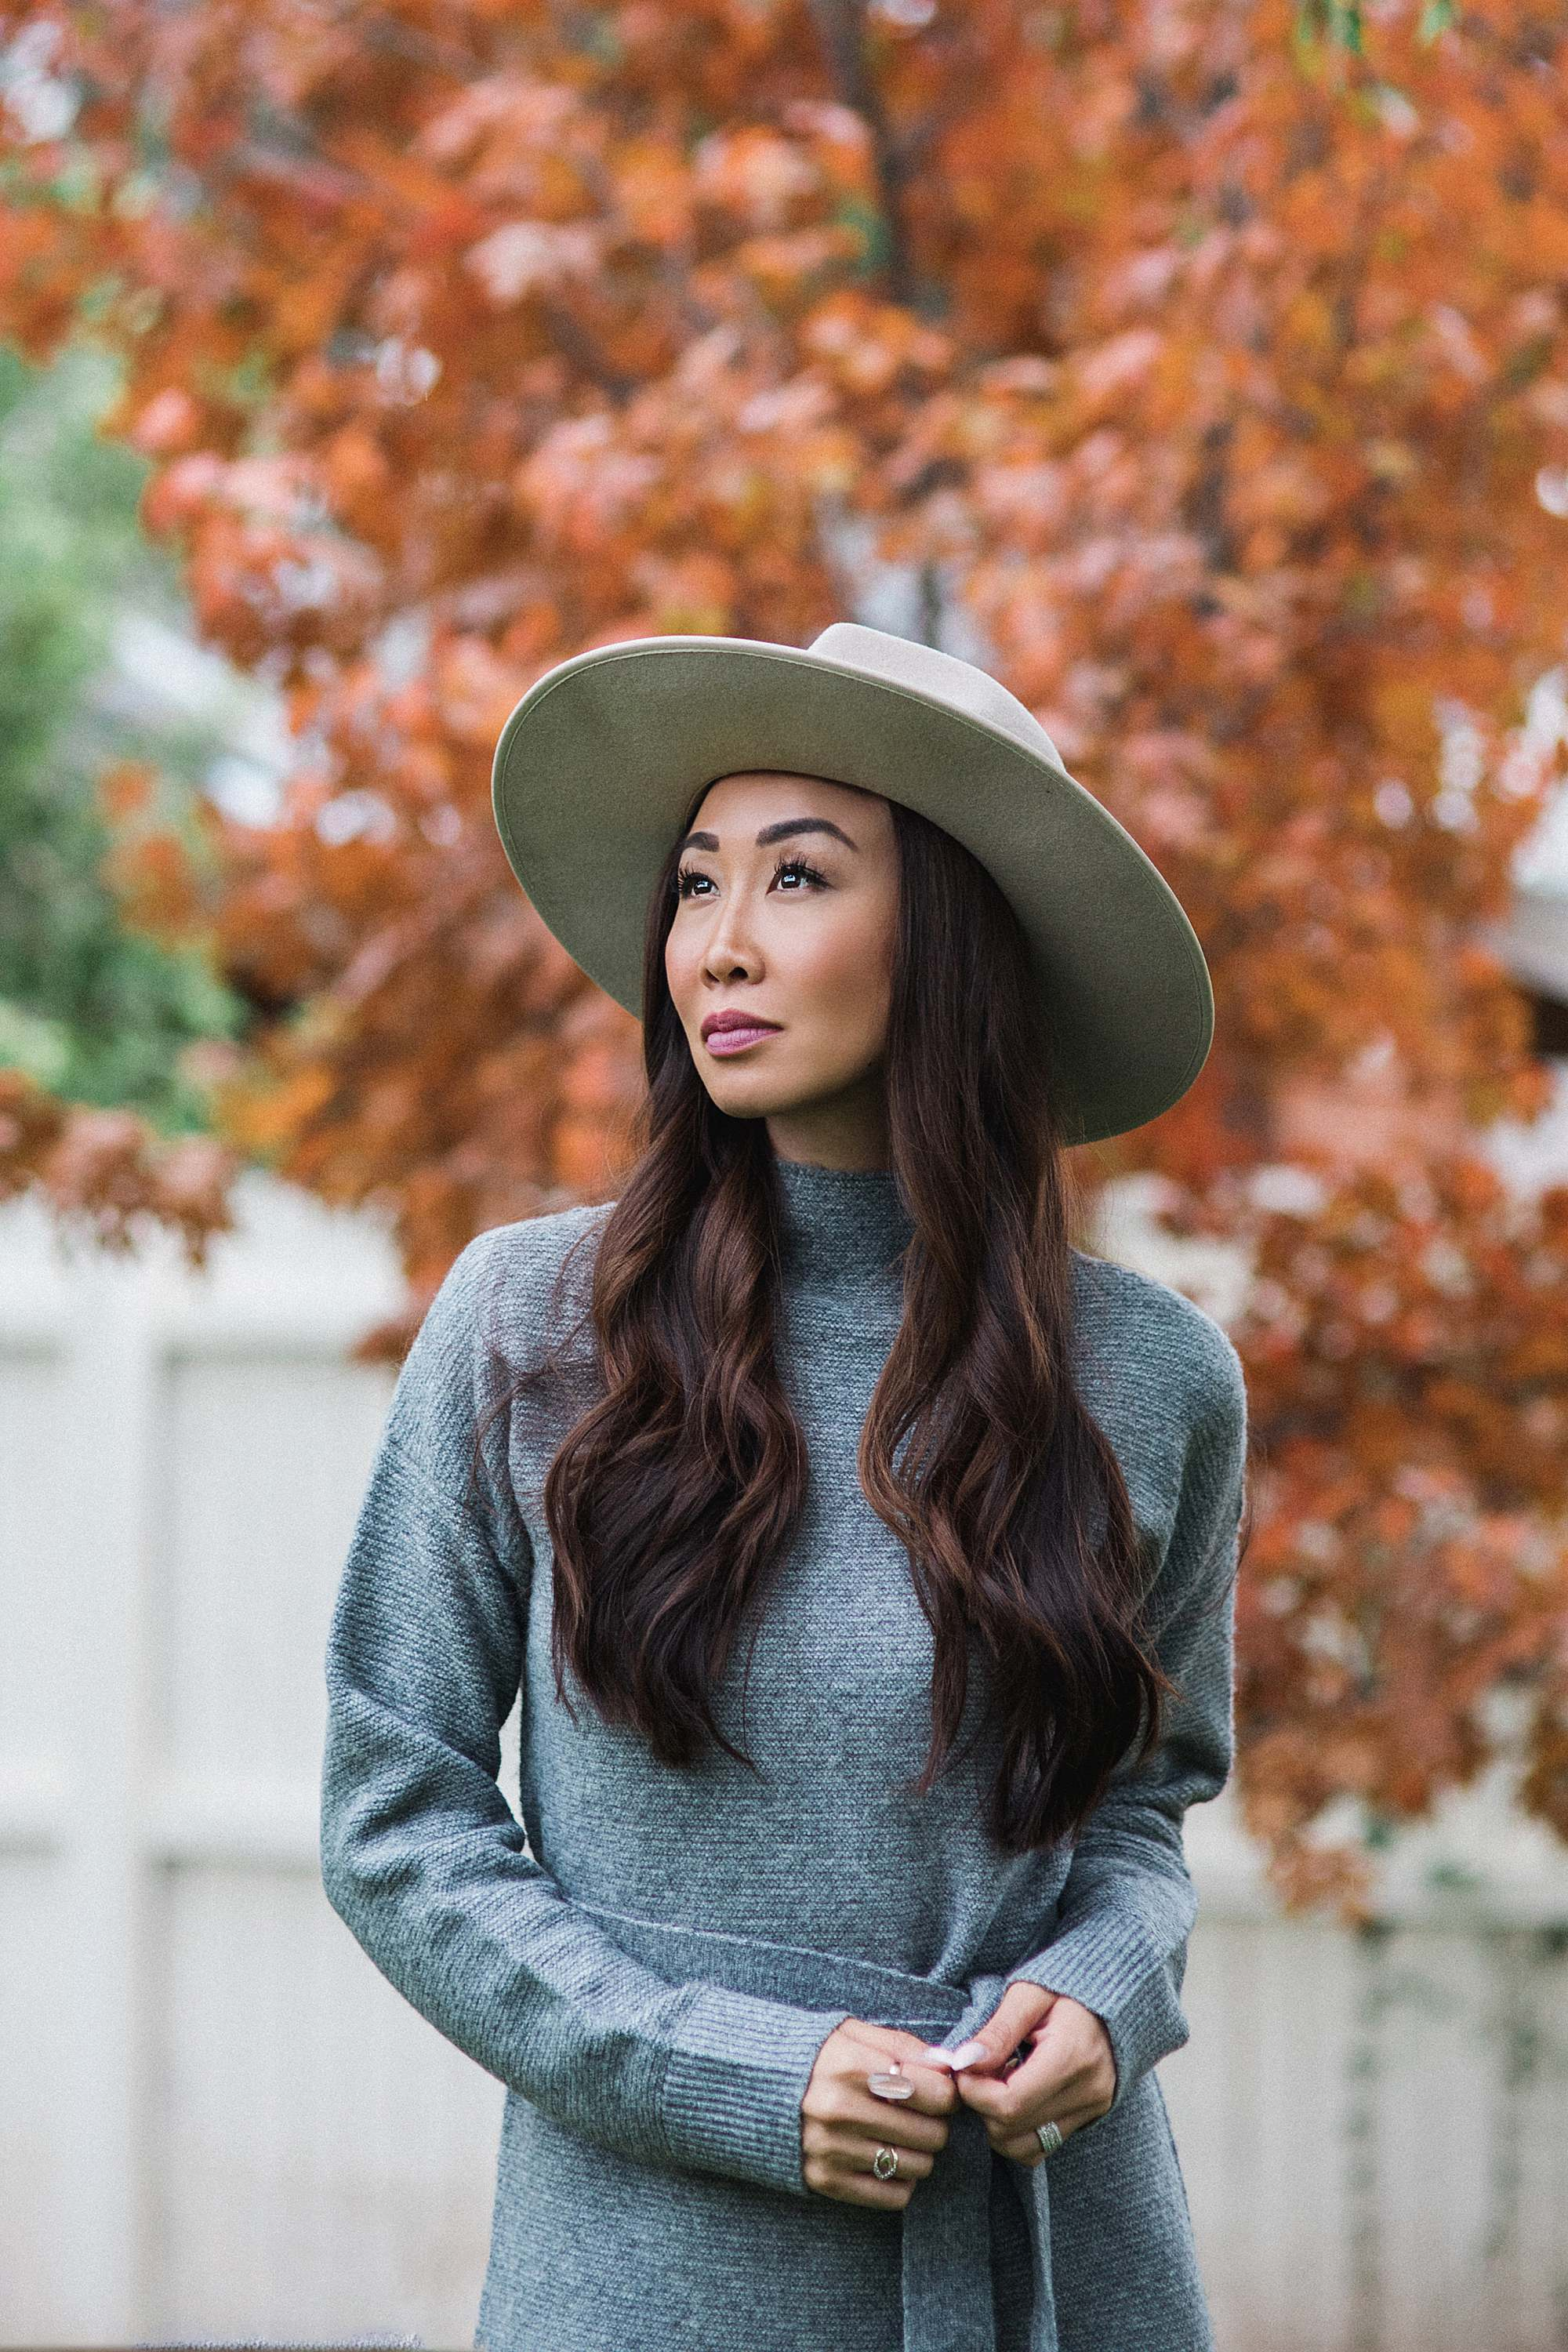 fashionable hats, capri hat wool hat, gray mock neck sweater dress